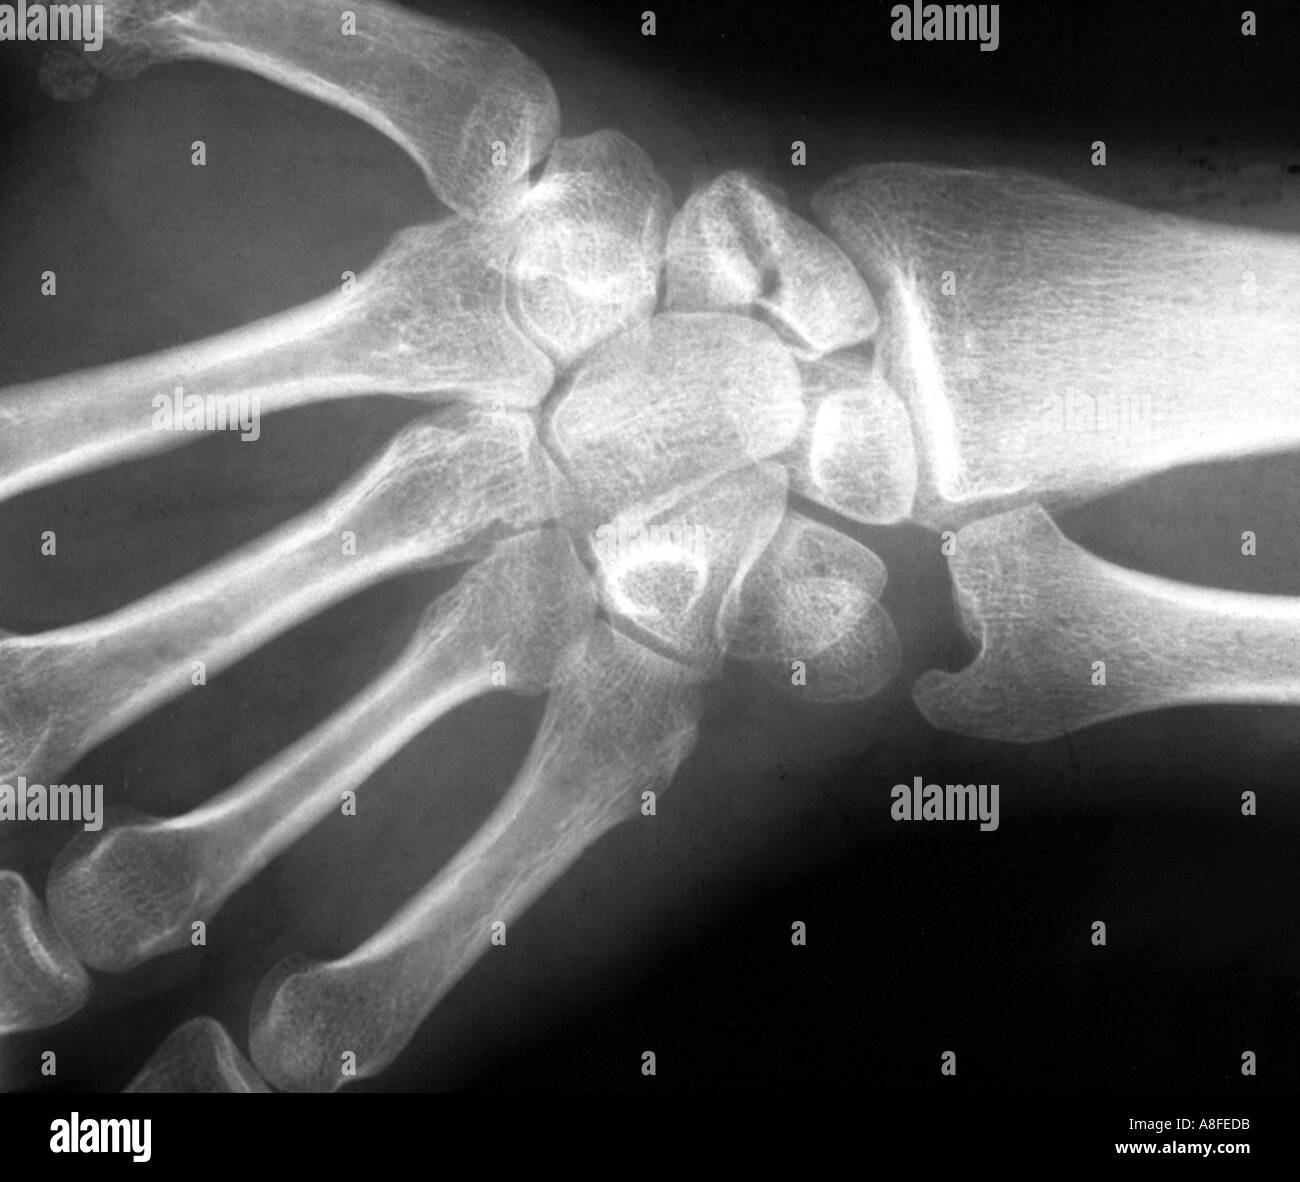 fractured scaphoid - Stock Image